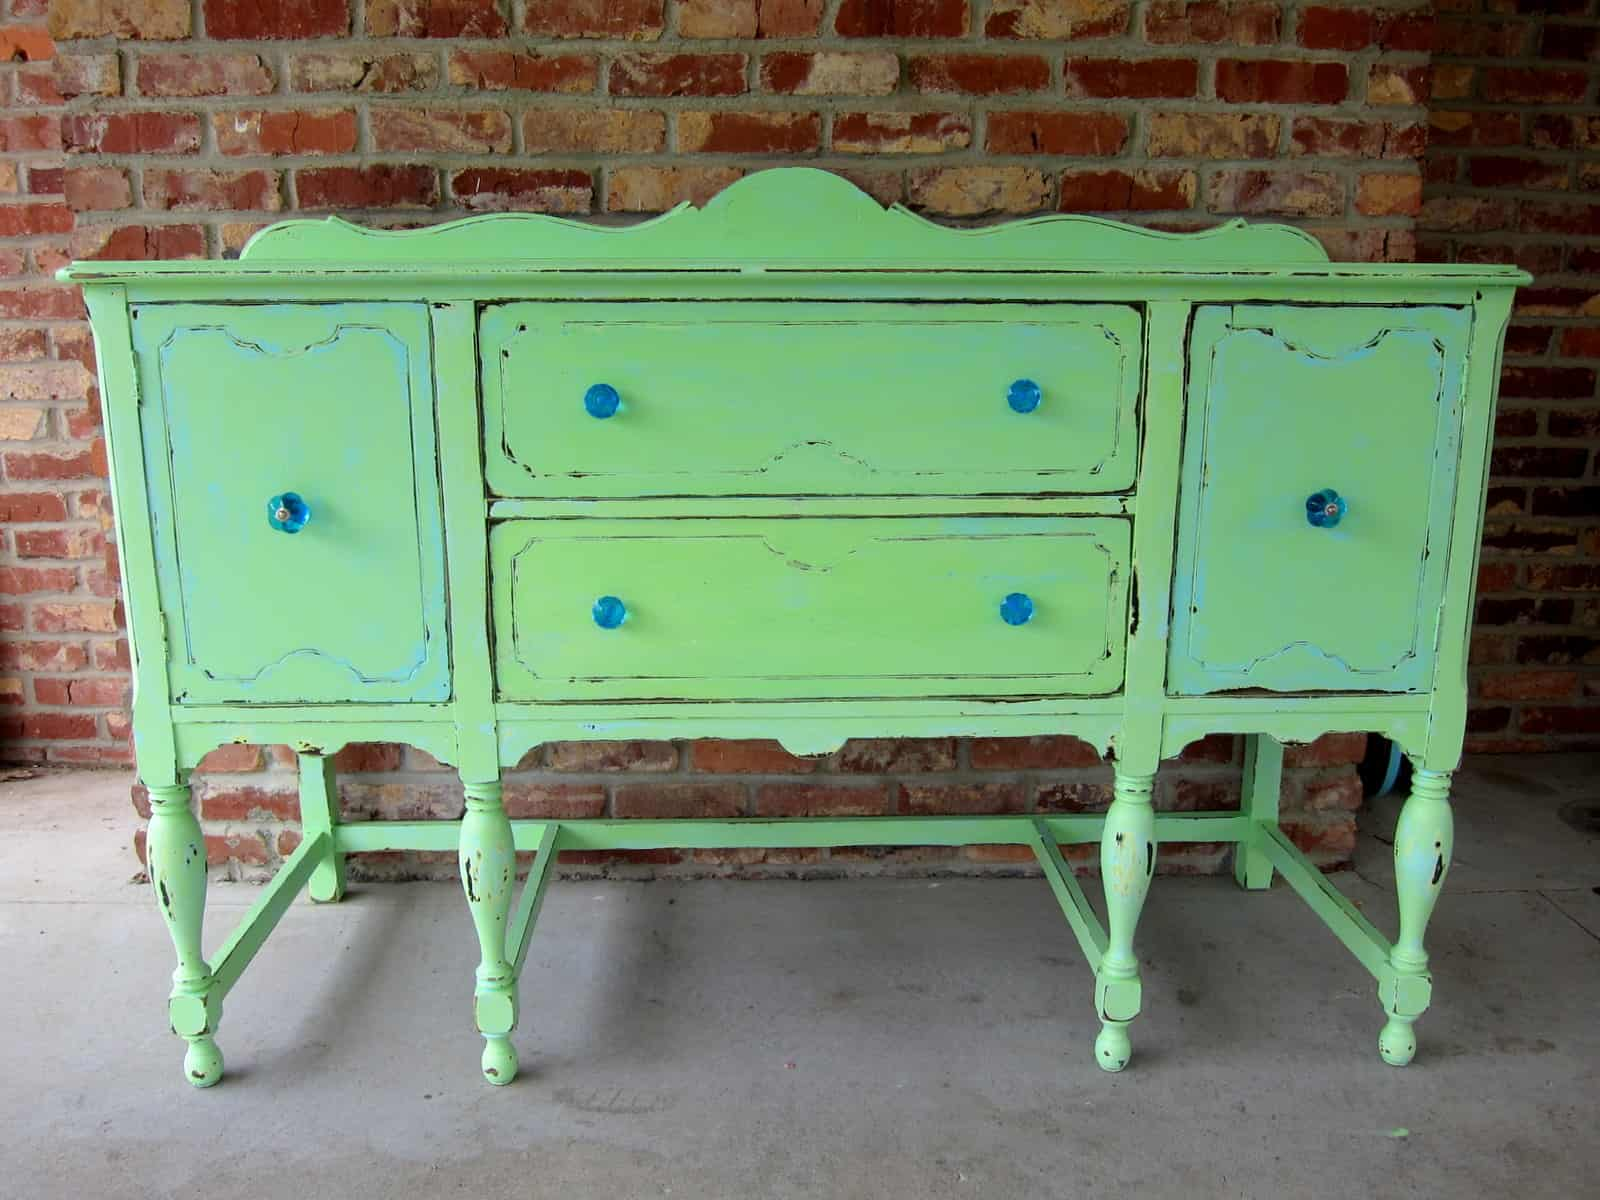 We paint furniture and make junk creations